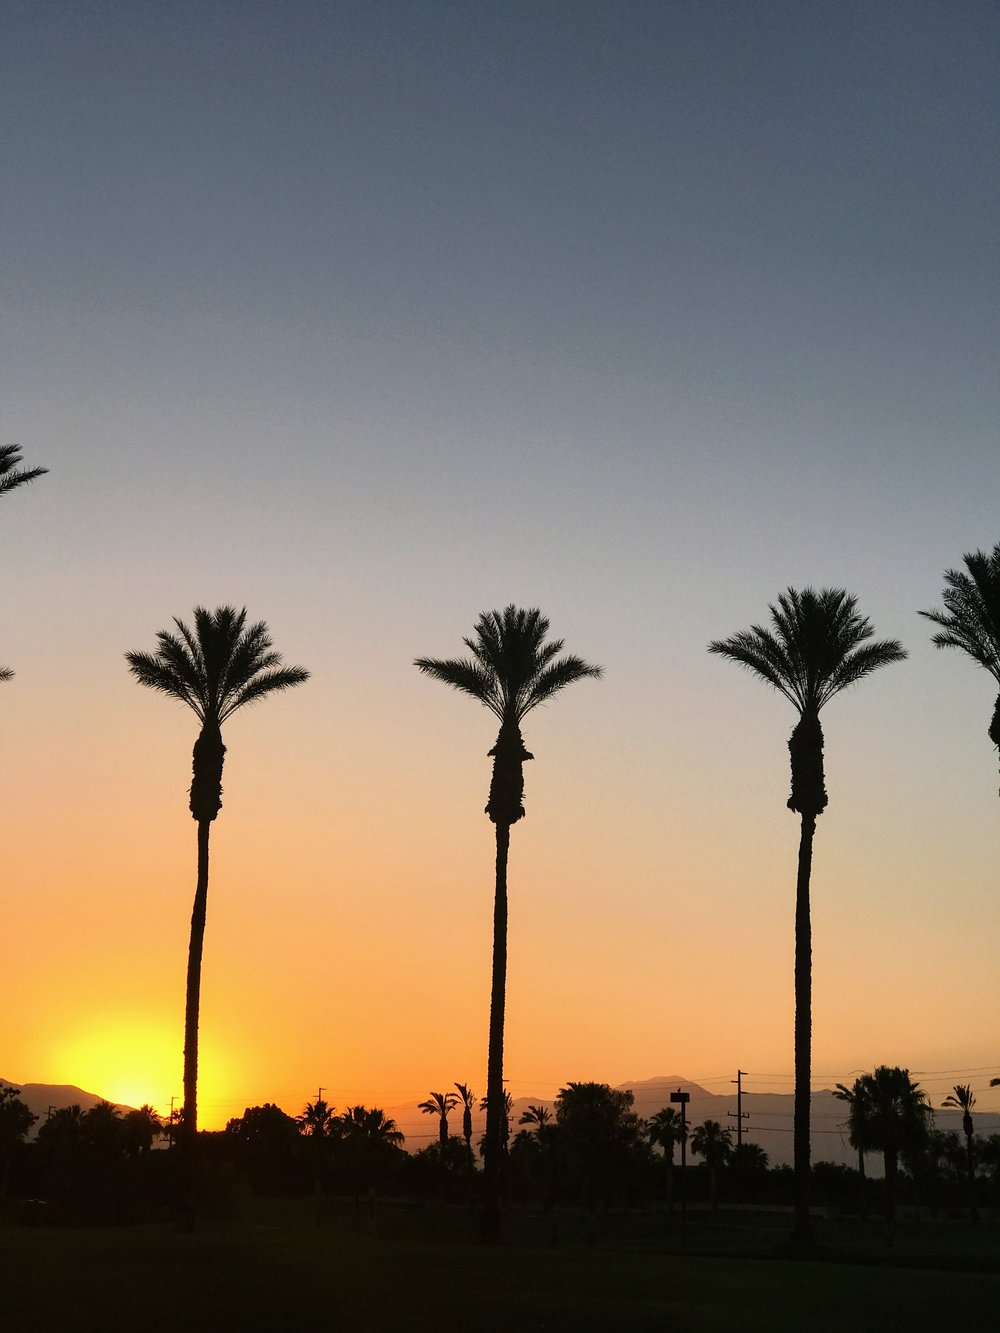 Sunset @ JW Marriott Palm Desert